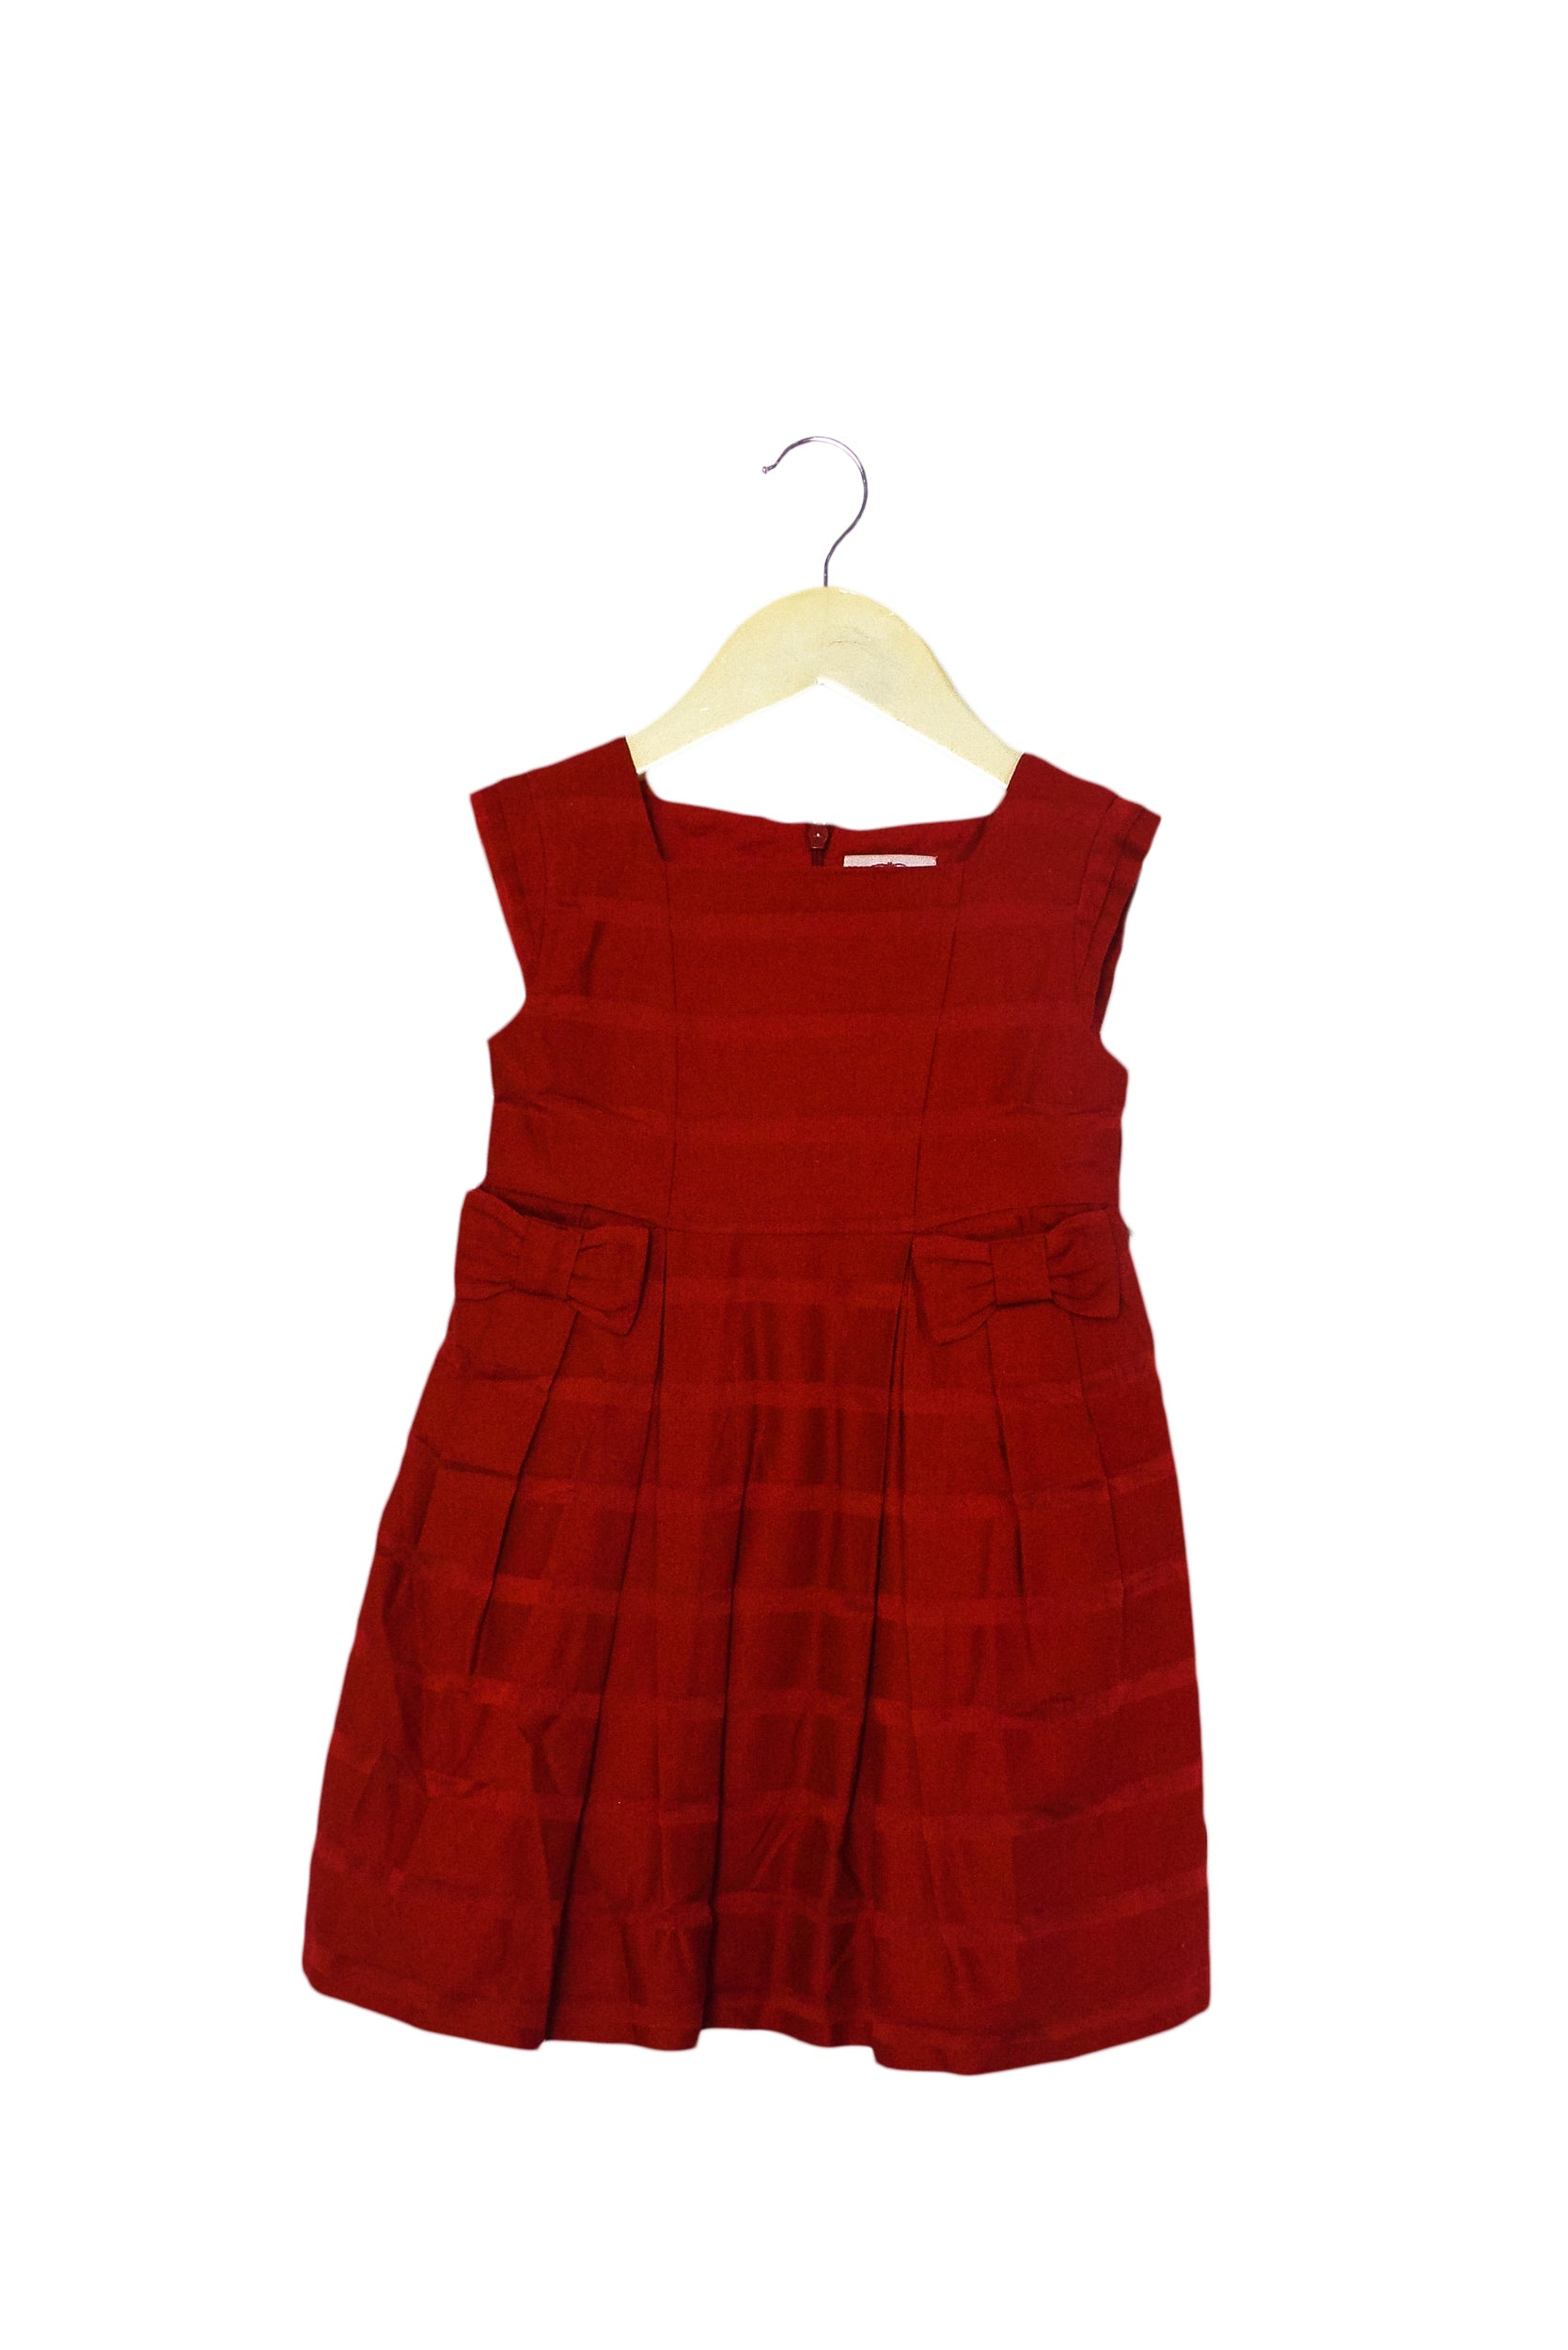 Sleeveless Dress 3T at Retykle